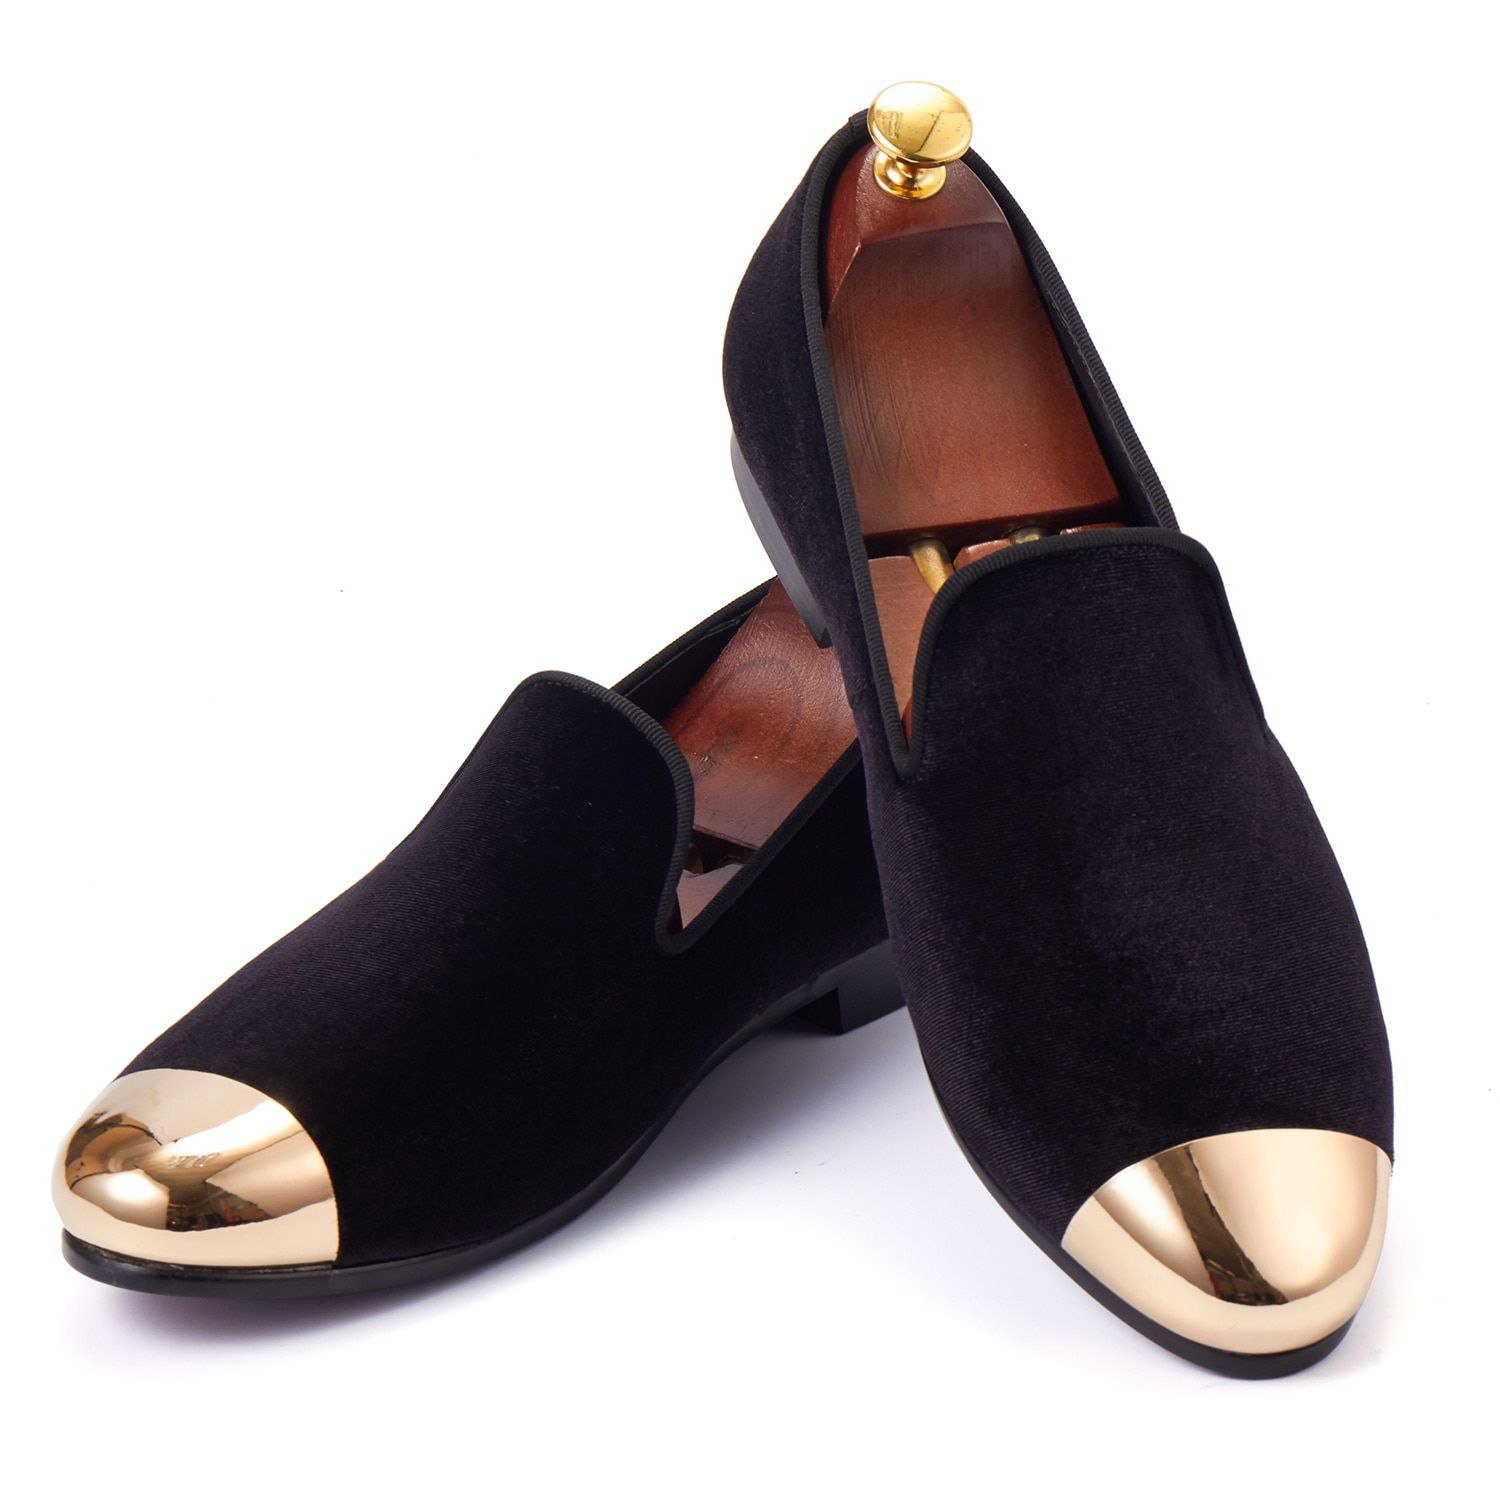 Harpelunde Classic Men Dress Shoes Black Velvet Loafers With Metal Cap Toe Hot Sell Flat Shoes Size 6-14